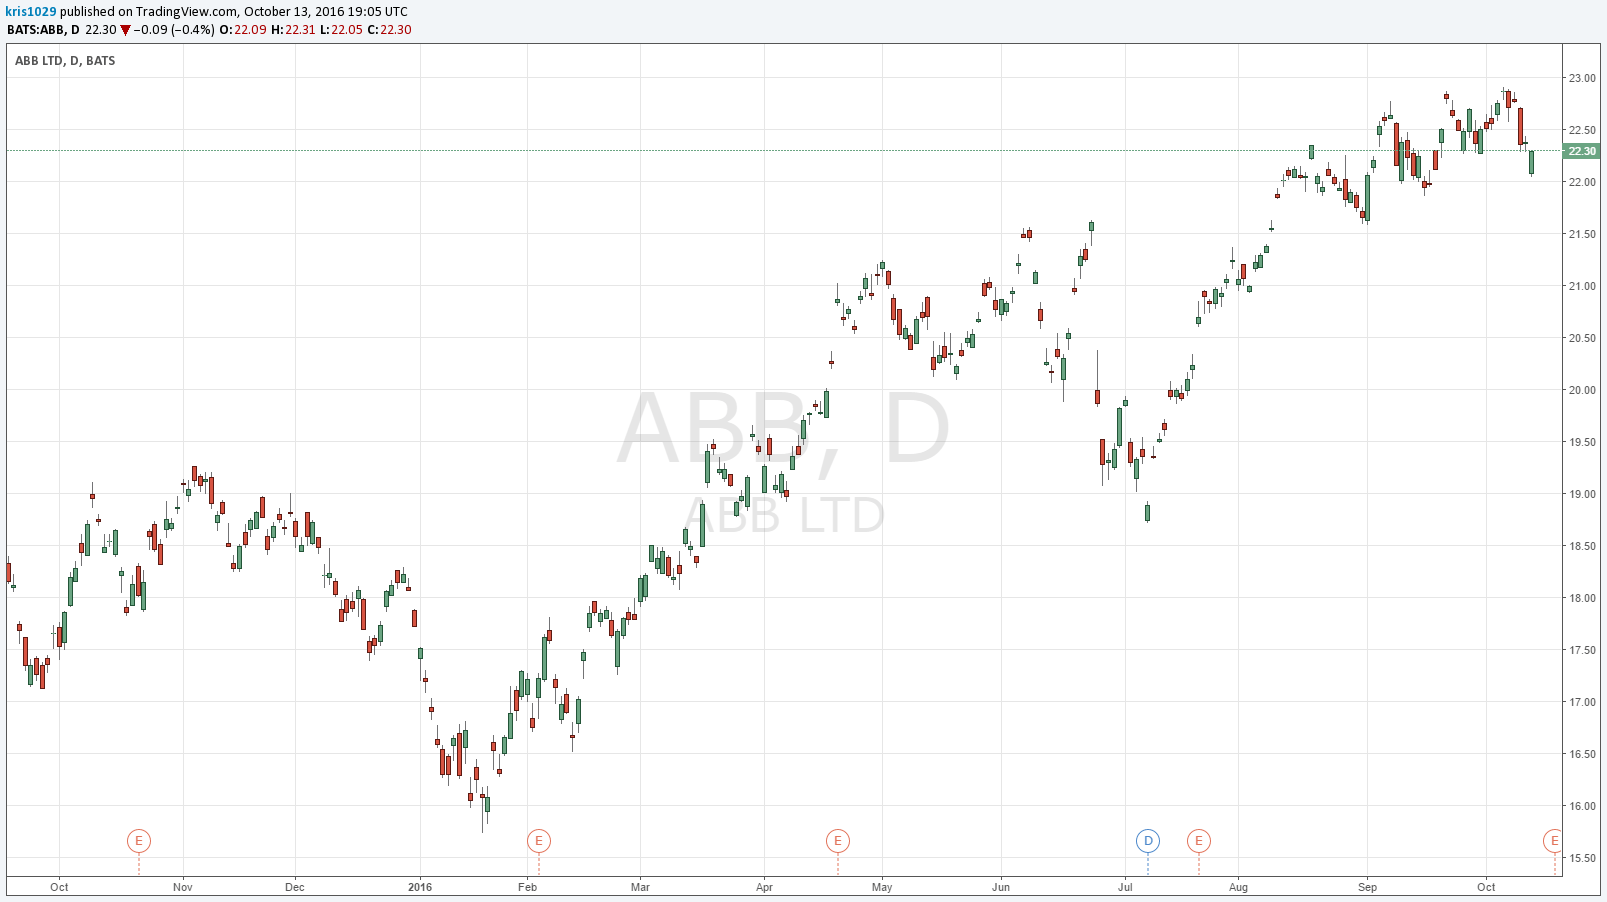 Abb Keeping Power Grid Segment Powerful Dividend